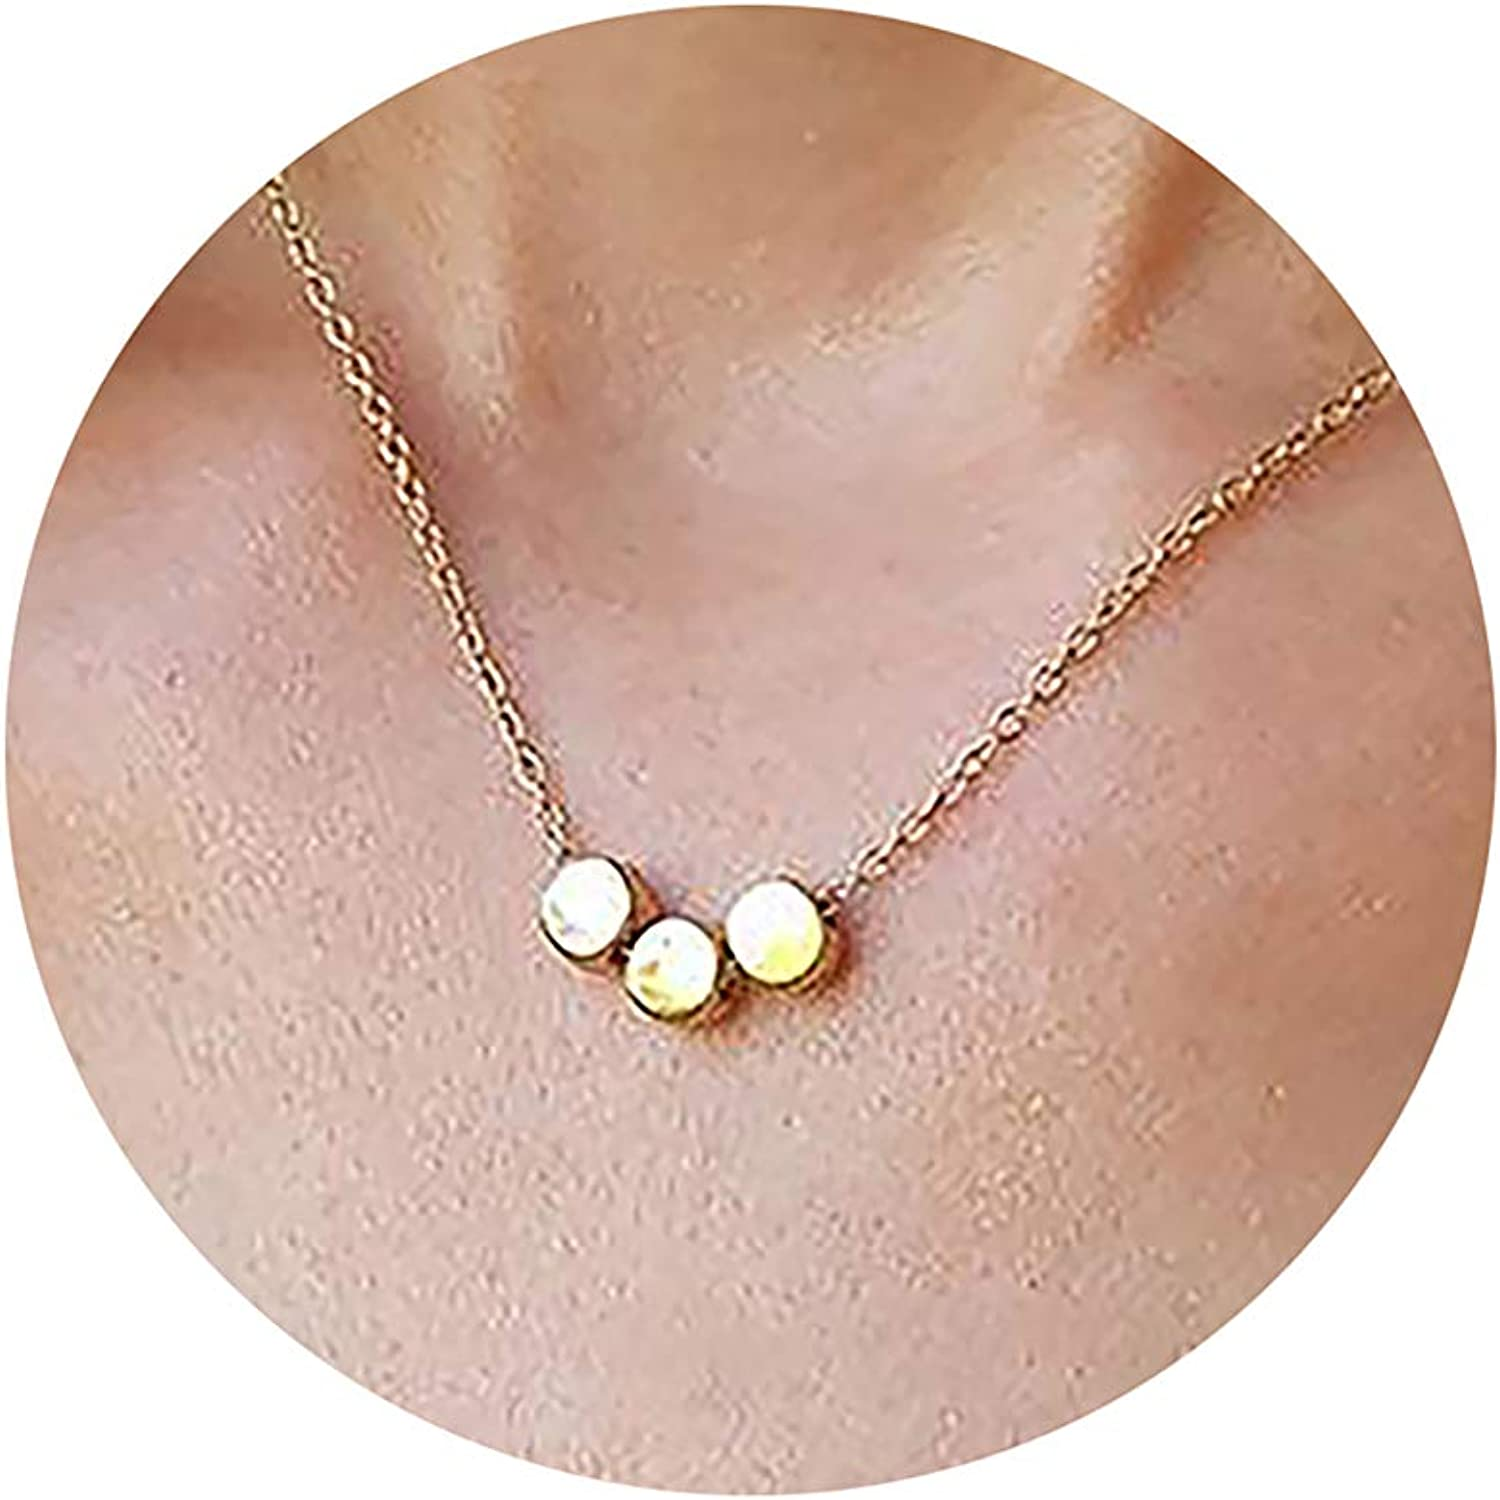 Minimal Dainty and Cute Beaded Necklace with Moon and Stars